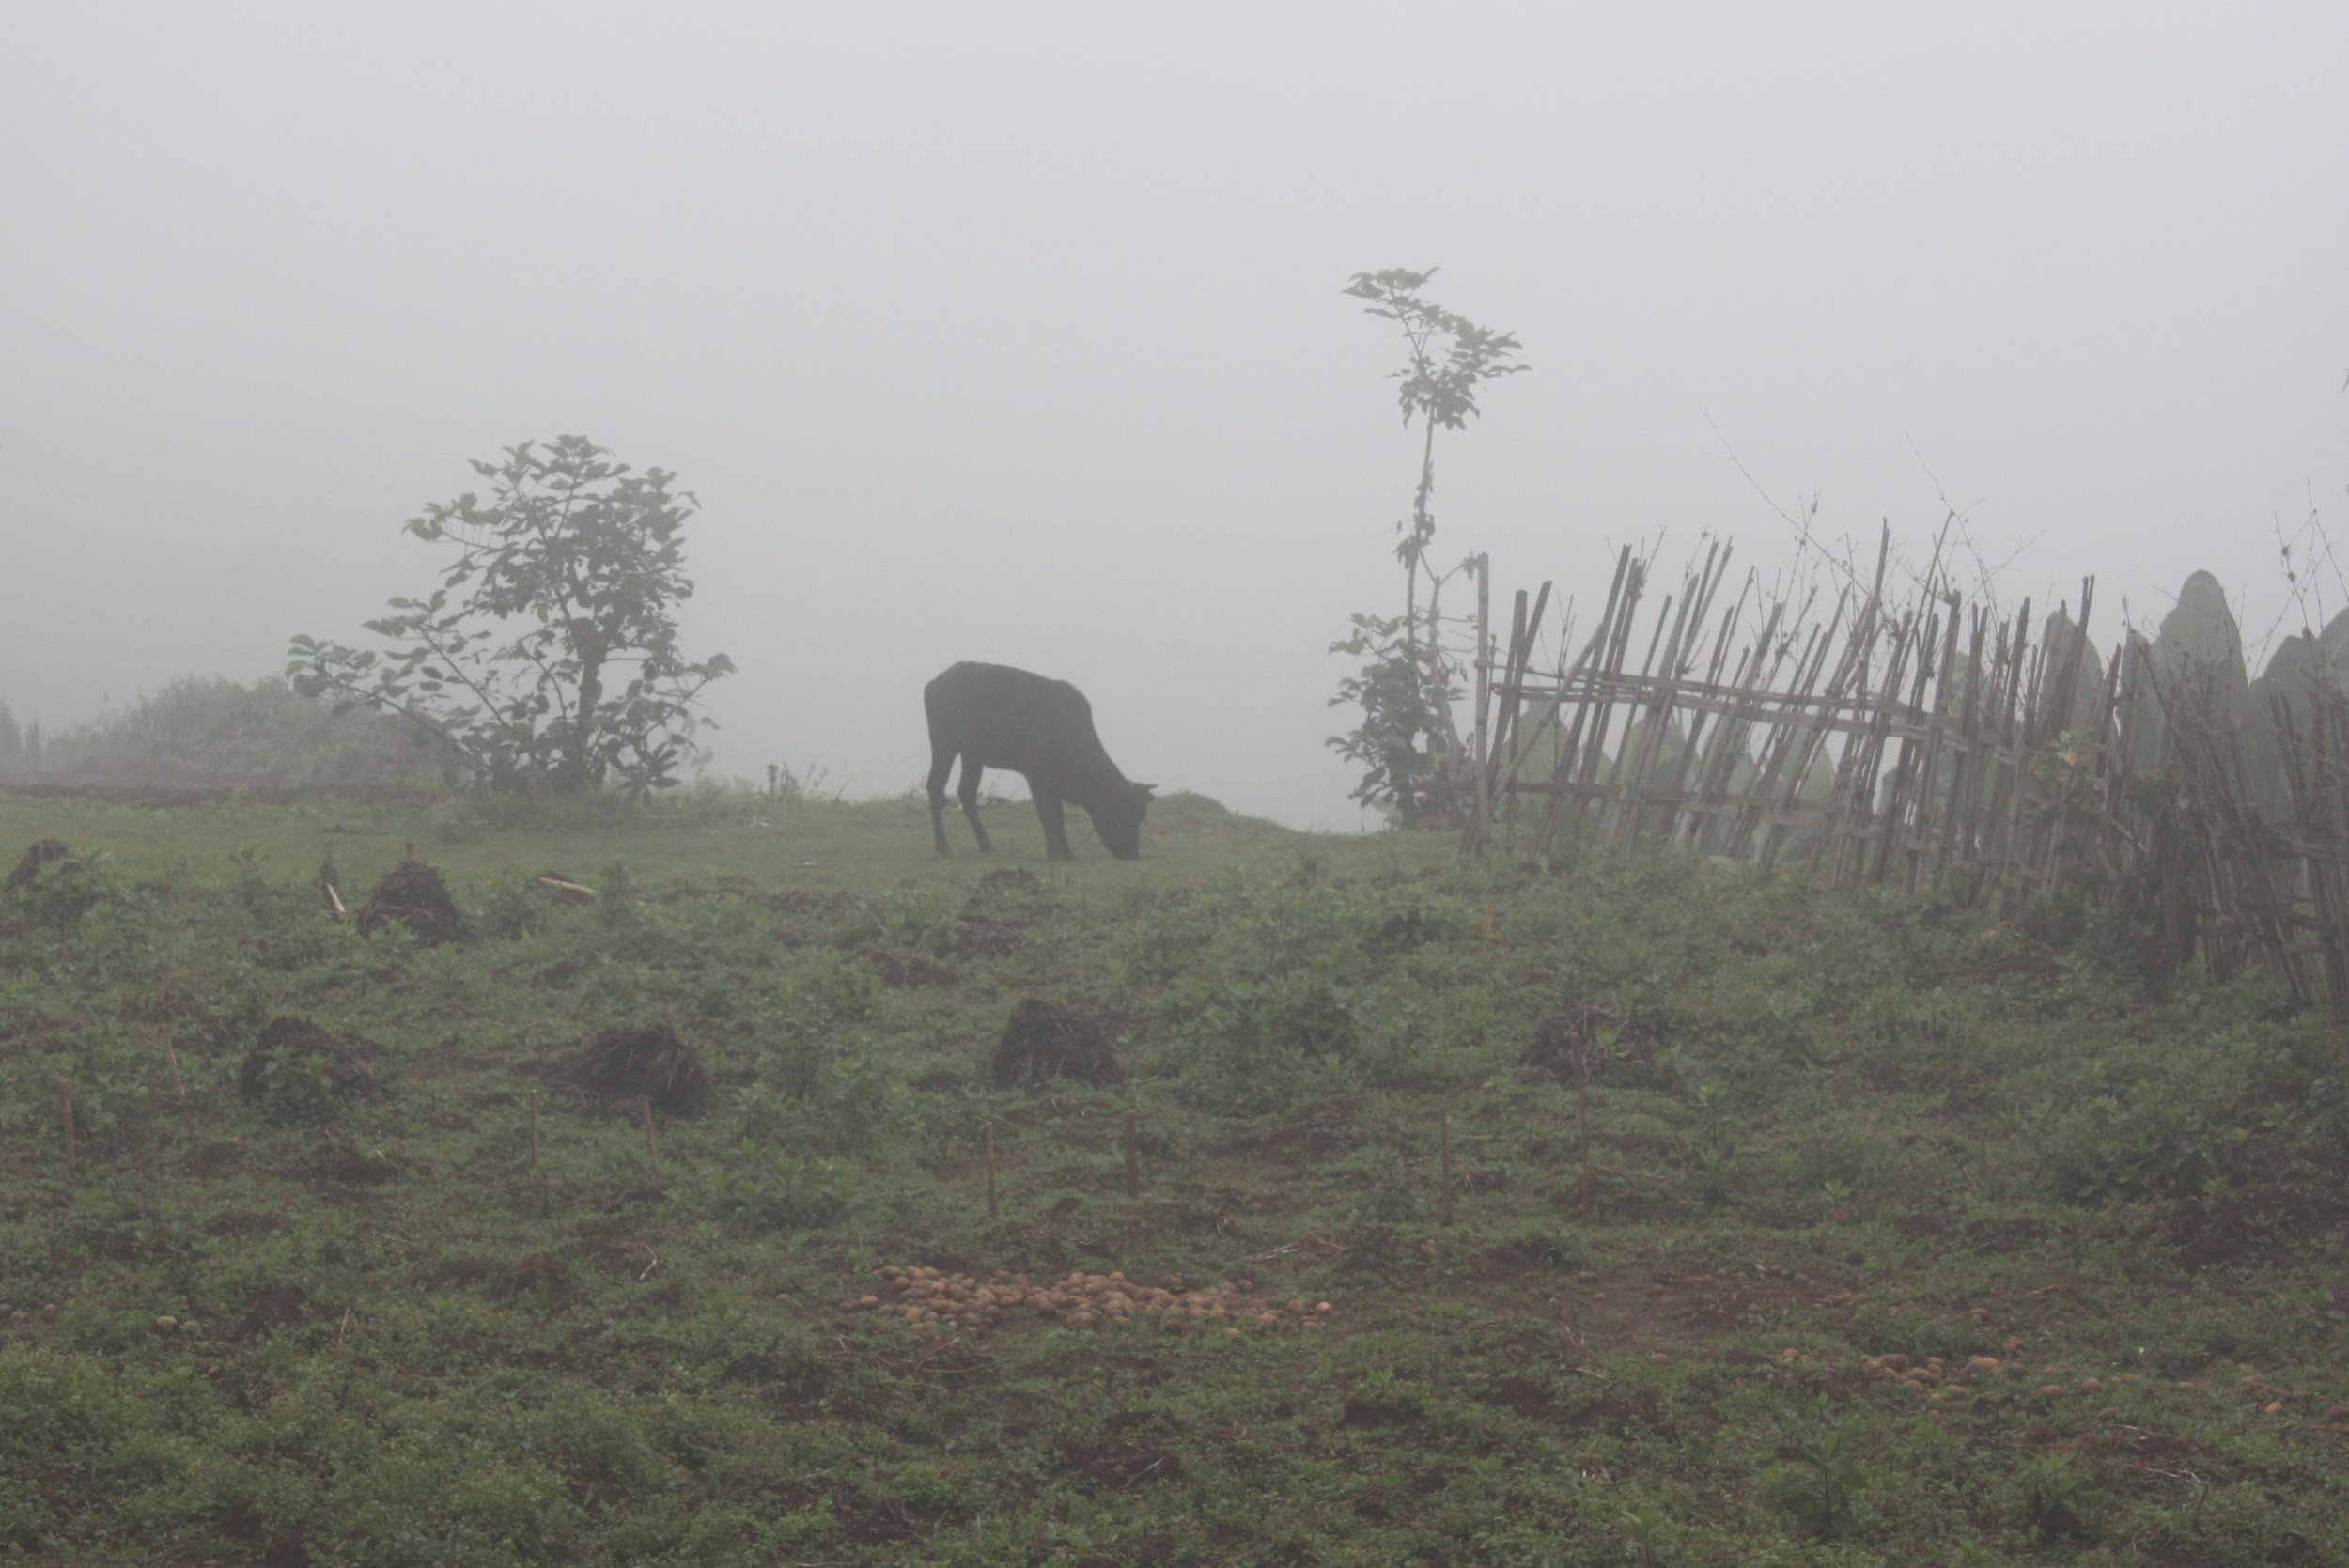 Cow Grazing in the Mist